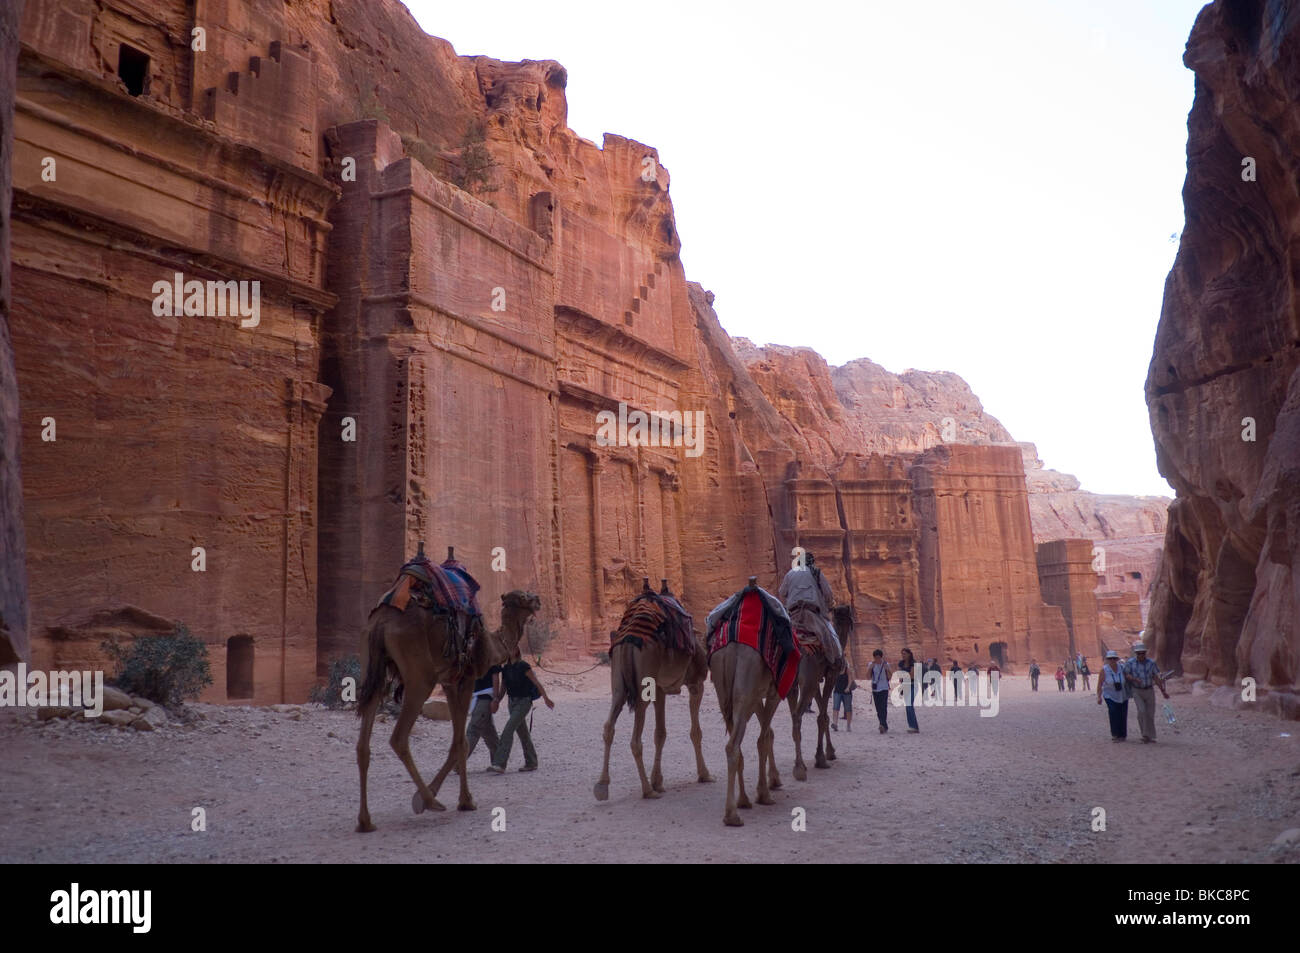 Tourists and camels in the 'Street of Facades' in Petra, Jordan - Stock Image